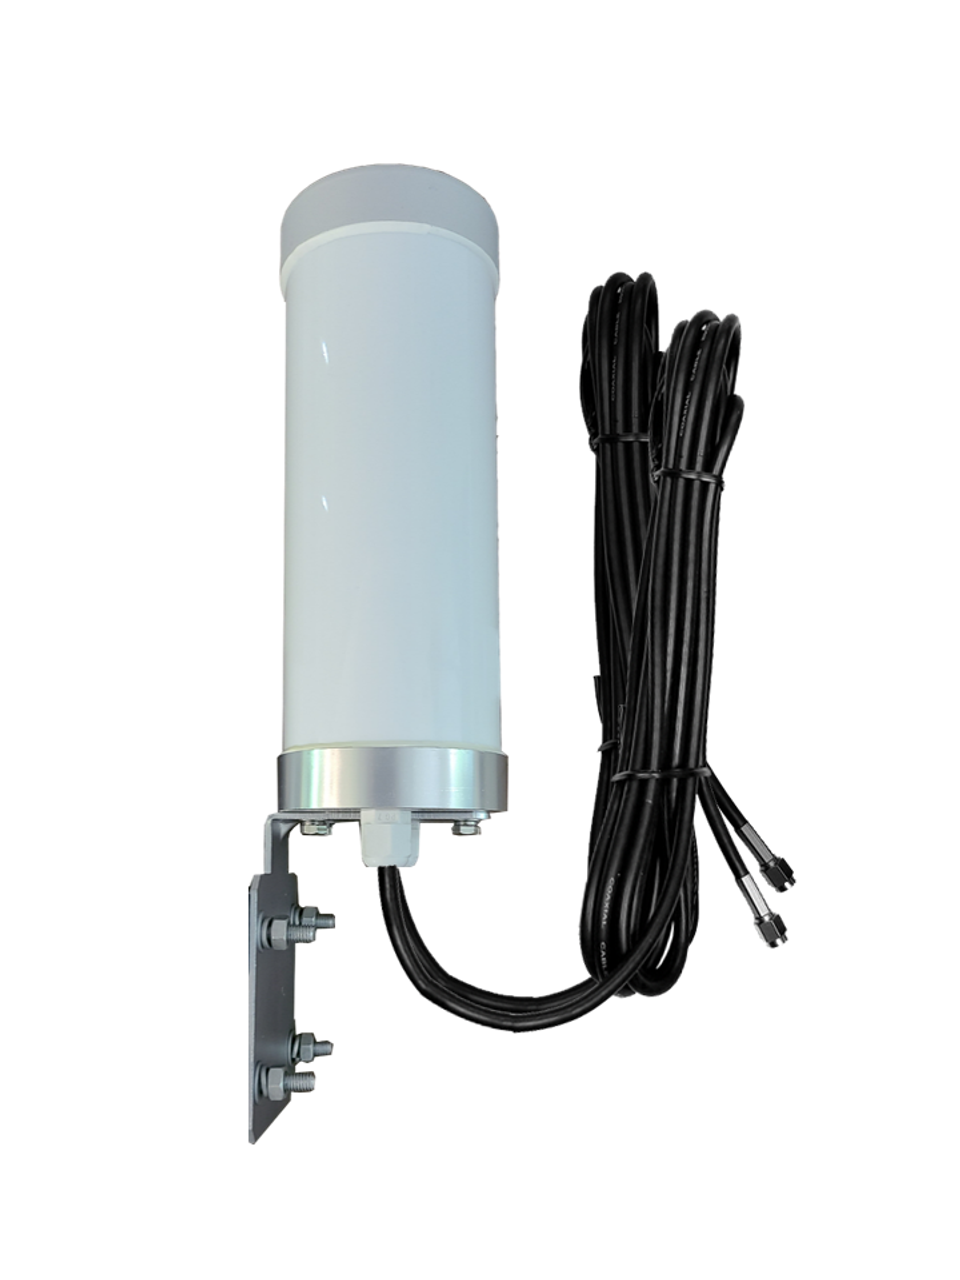 M29T T-Mobile (Band 71 Optimized) MIMO 2 x Cellular 4G LTE CBRS 5G NR M2M IoT Bracket Mount Antenna w/2 x 16ft Coax Cables - SMA Male